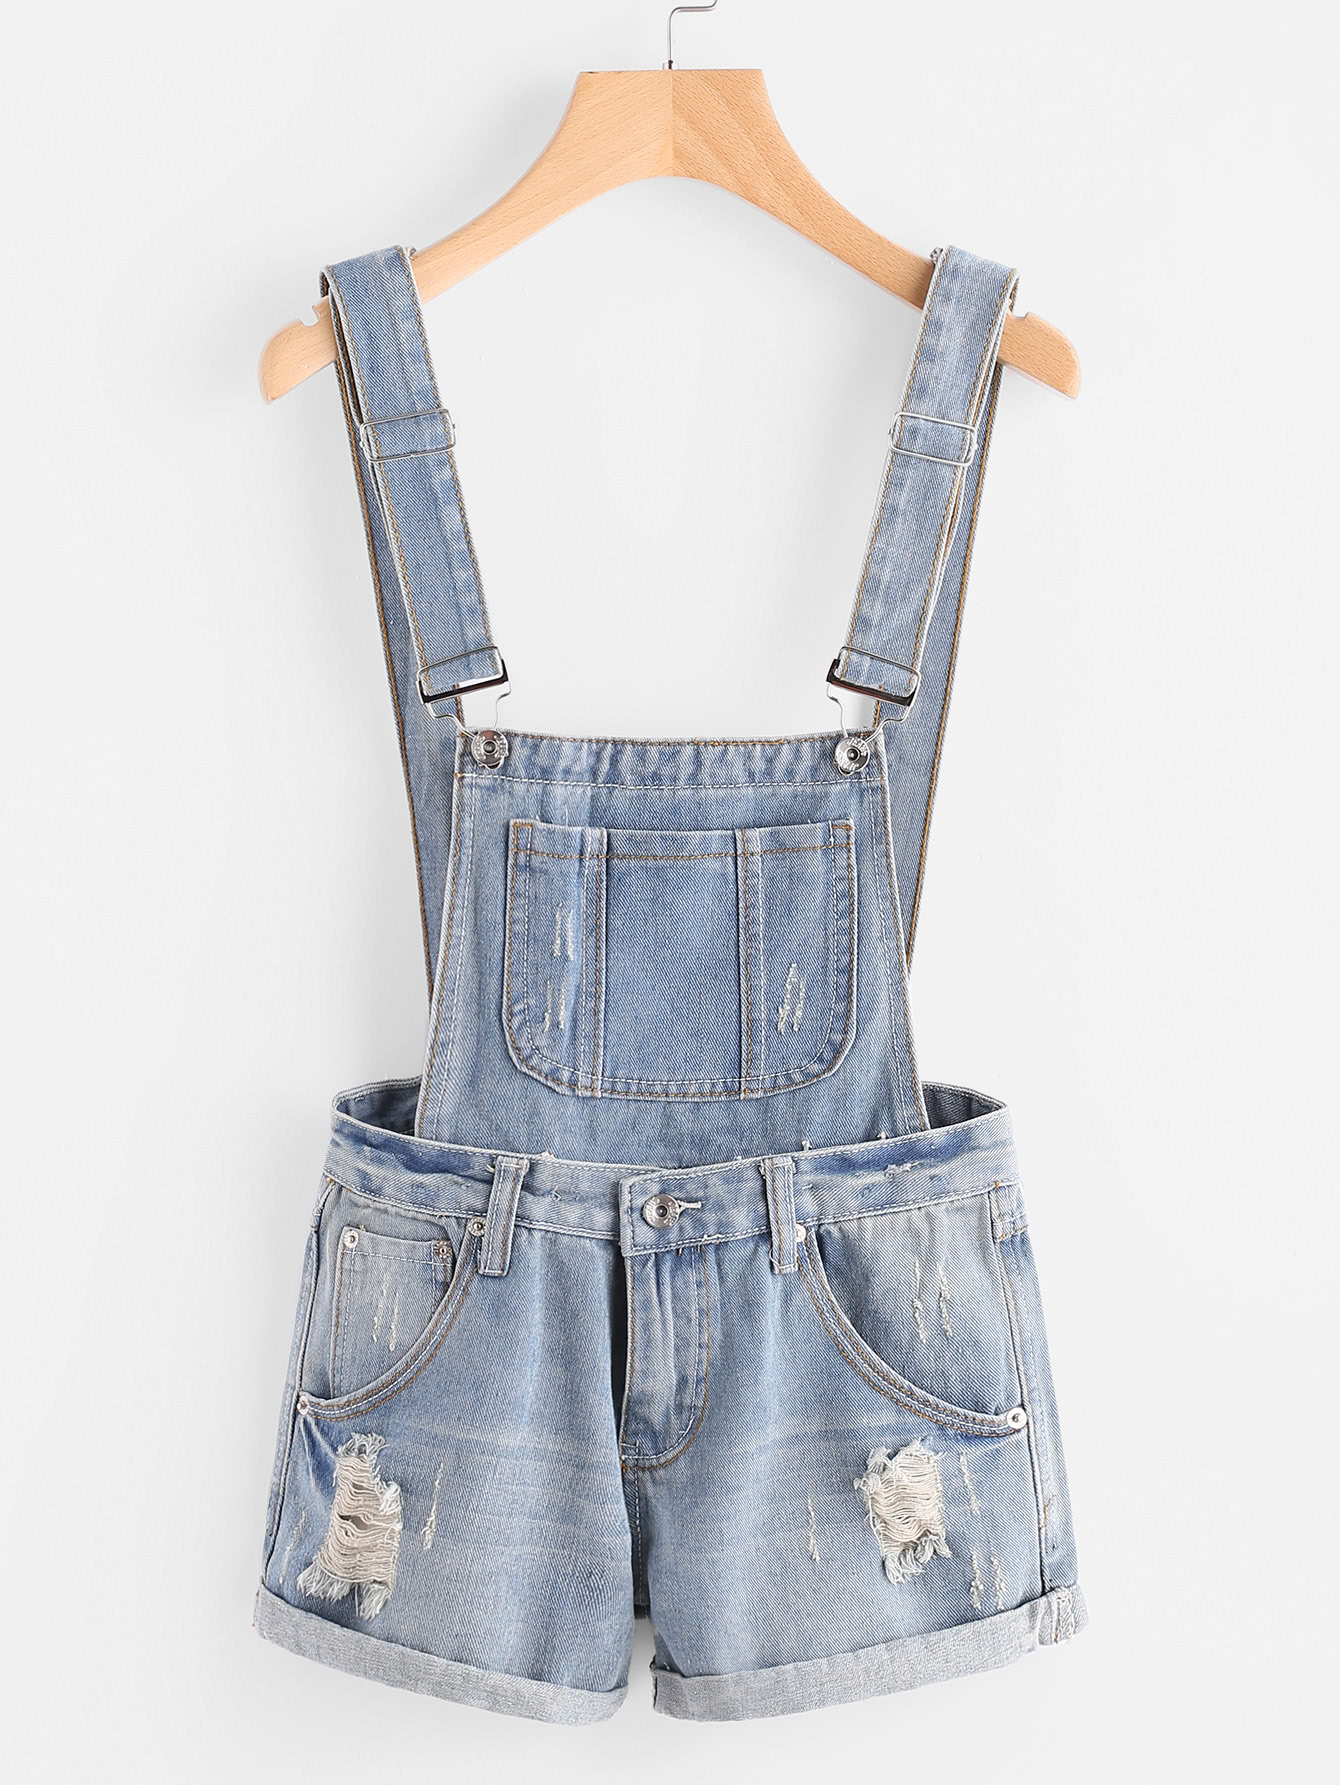 Image of Distress Cuffed Denim Dungaree Shorts